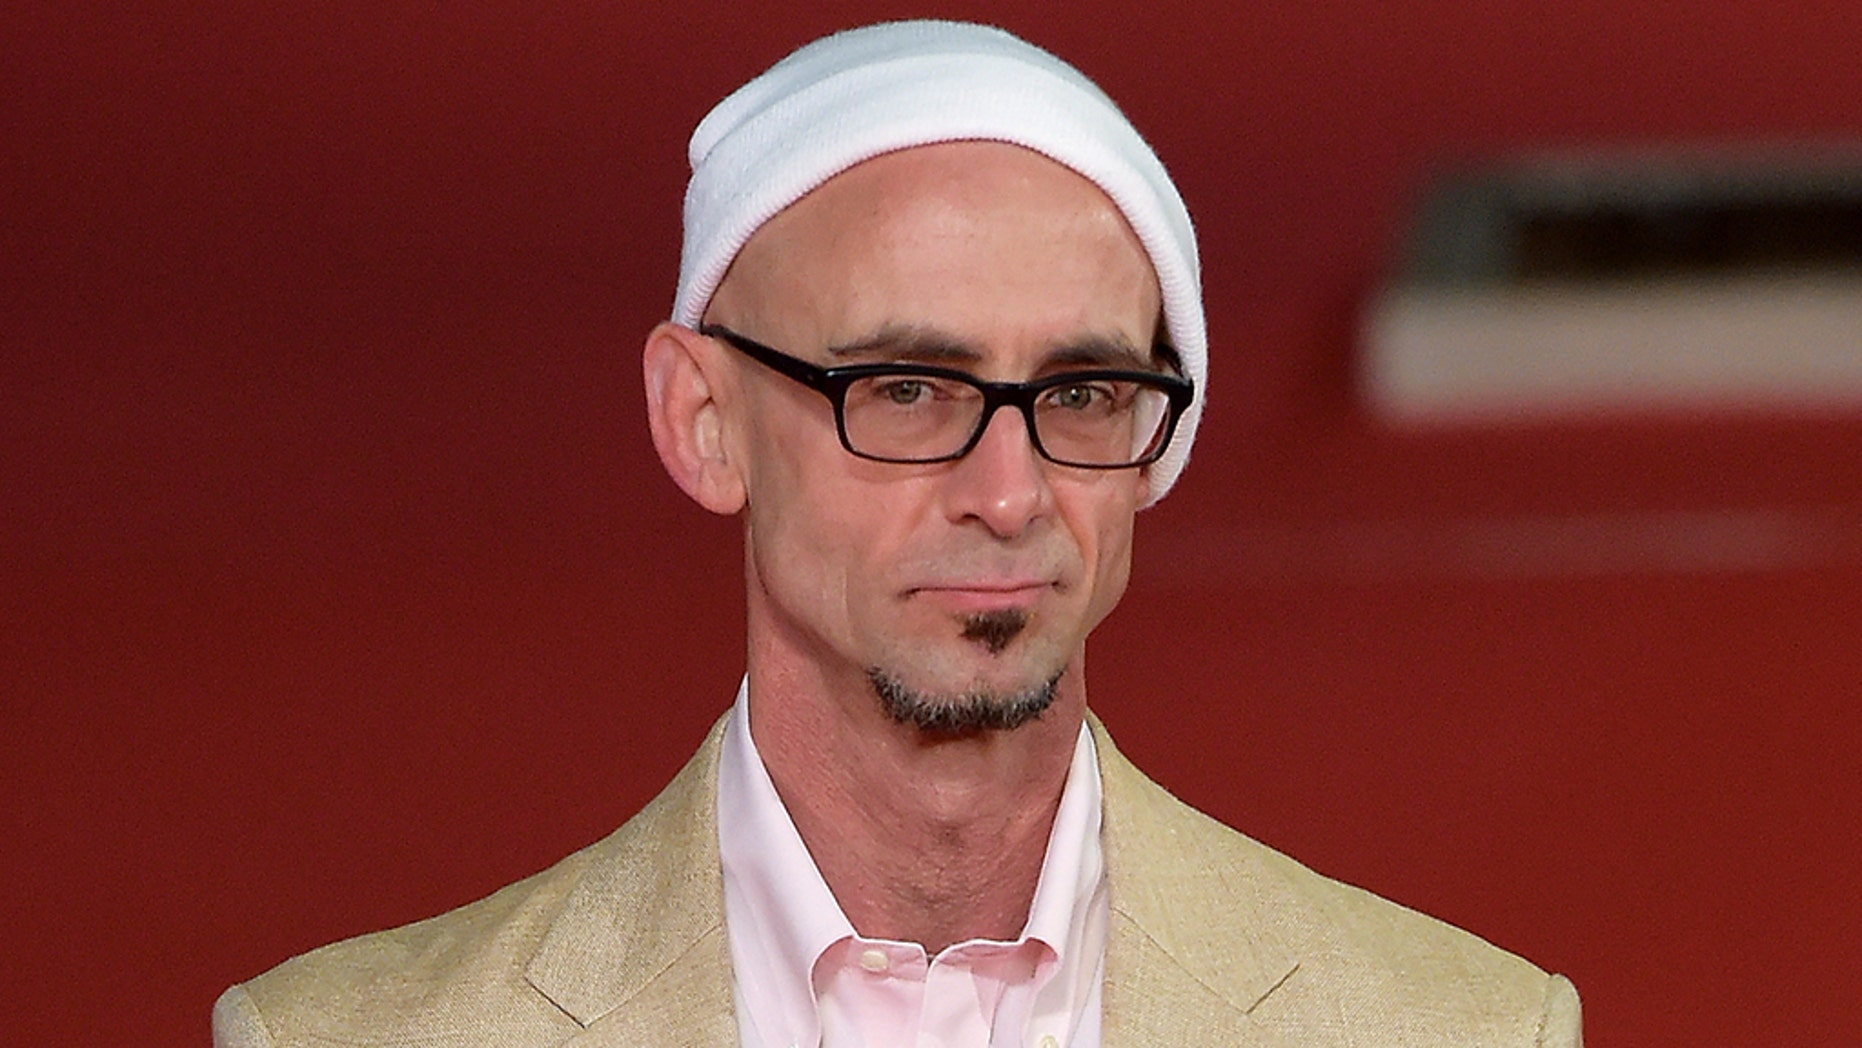 """""""I apologize for cursing my publishers,"""" Chuck Palahniuk, the author of """"Fight Club,"""" wrote."""